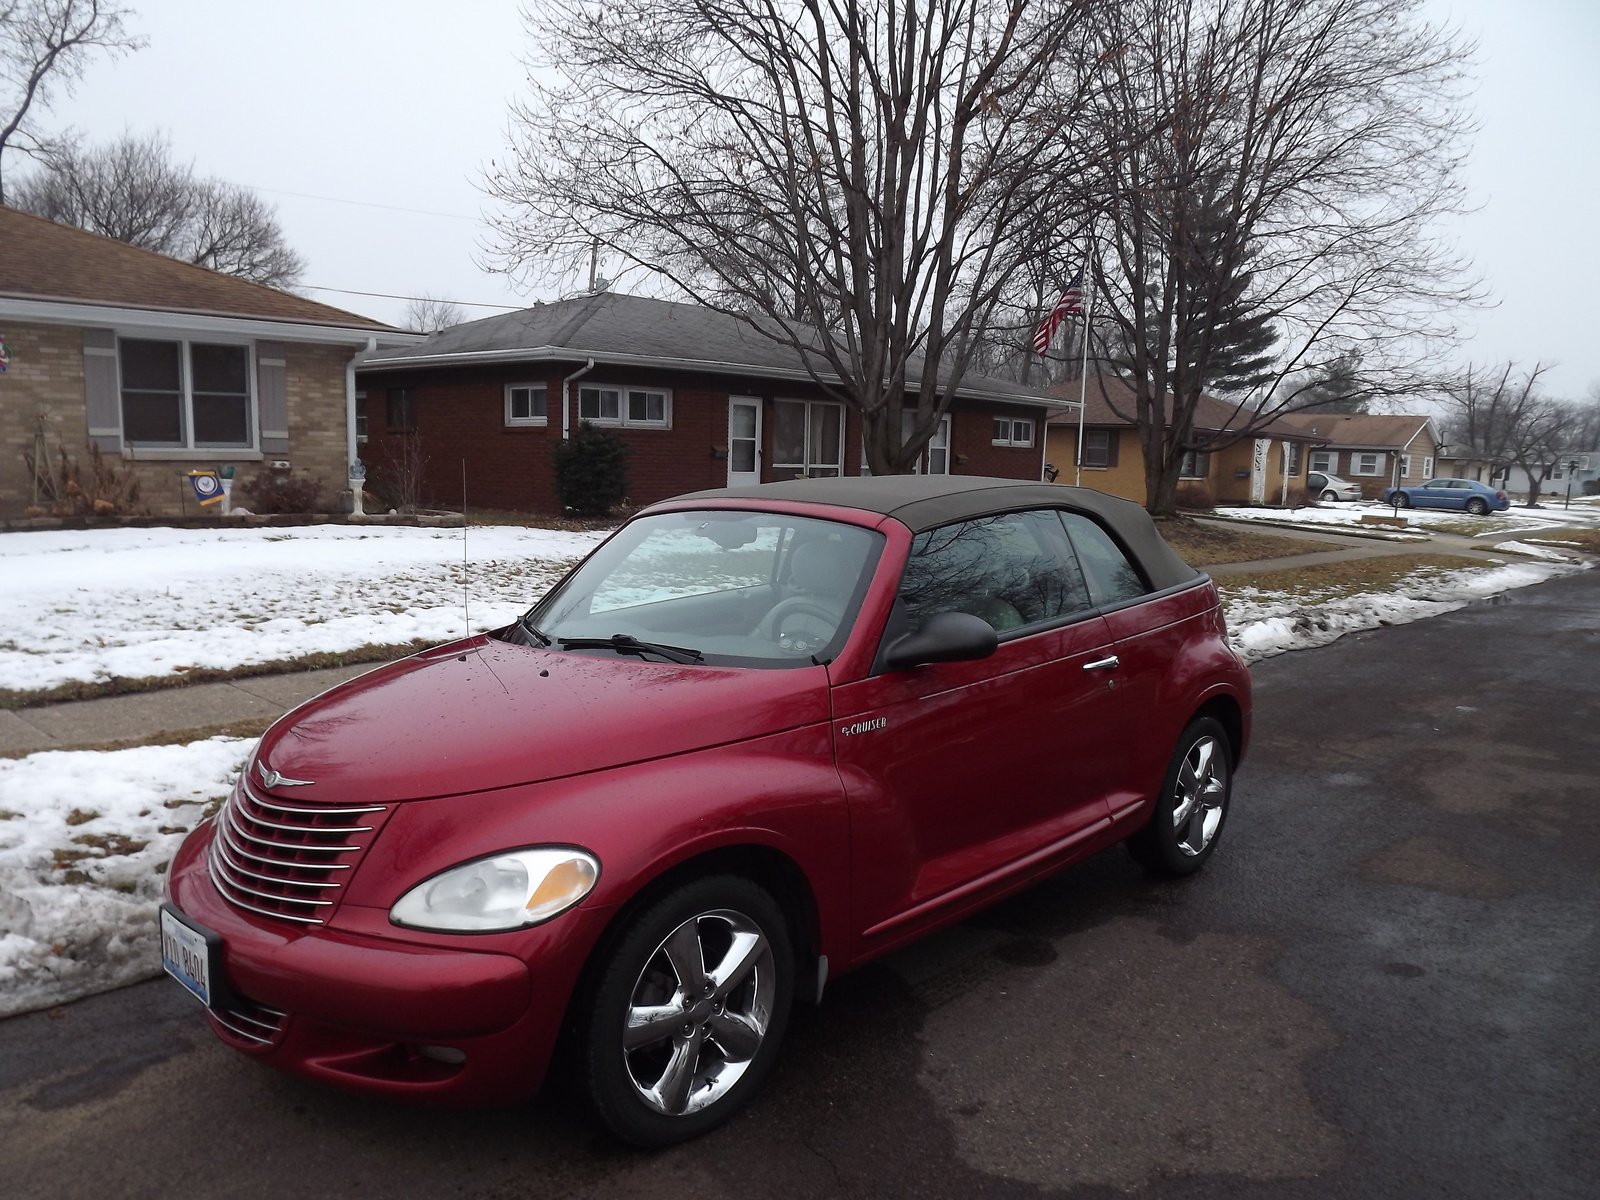 used chrysler pt cruiser for sale champaign il cargurus. Black Bedroom Furniture Sets. Home Design Ideas